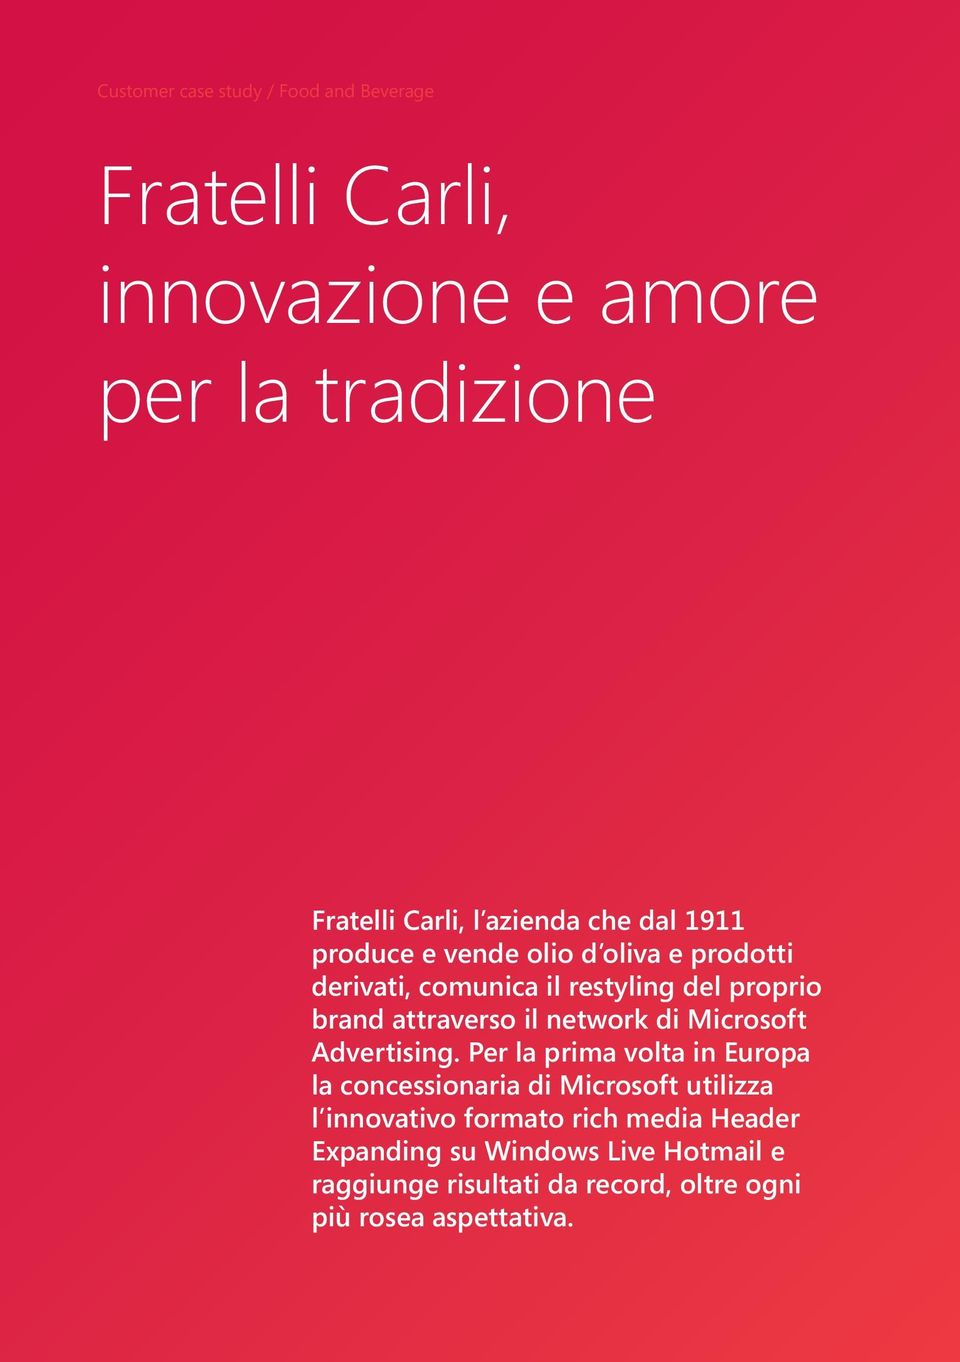 network di Microsoft Advertising.